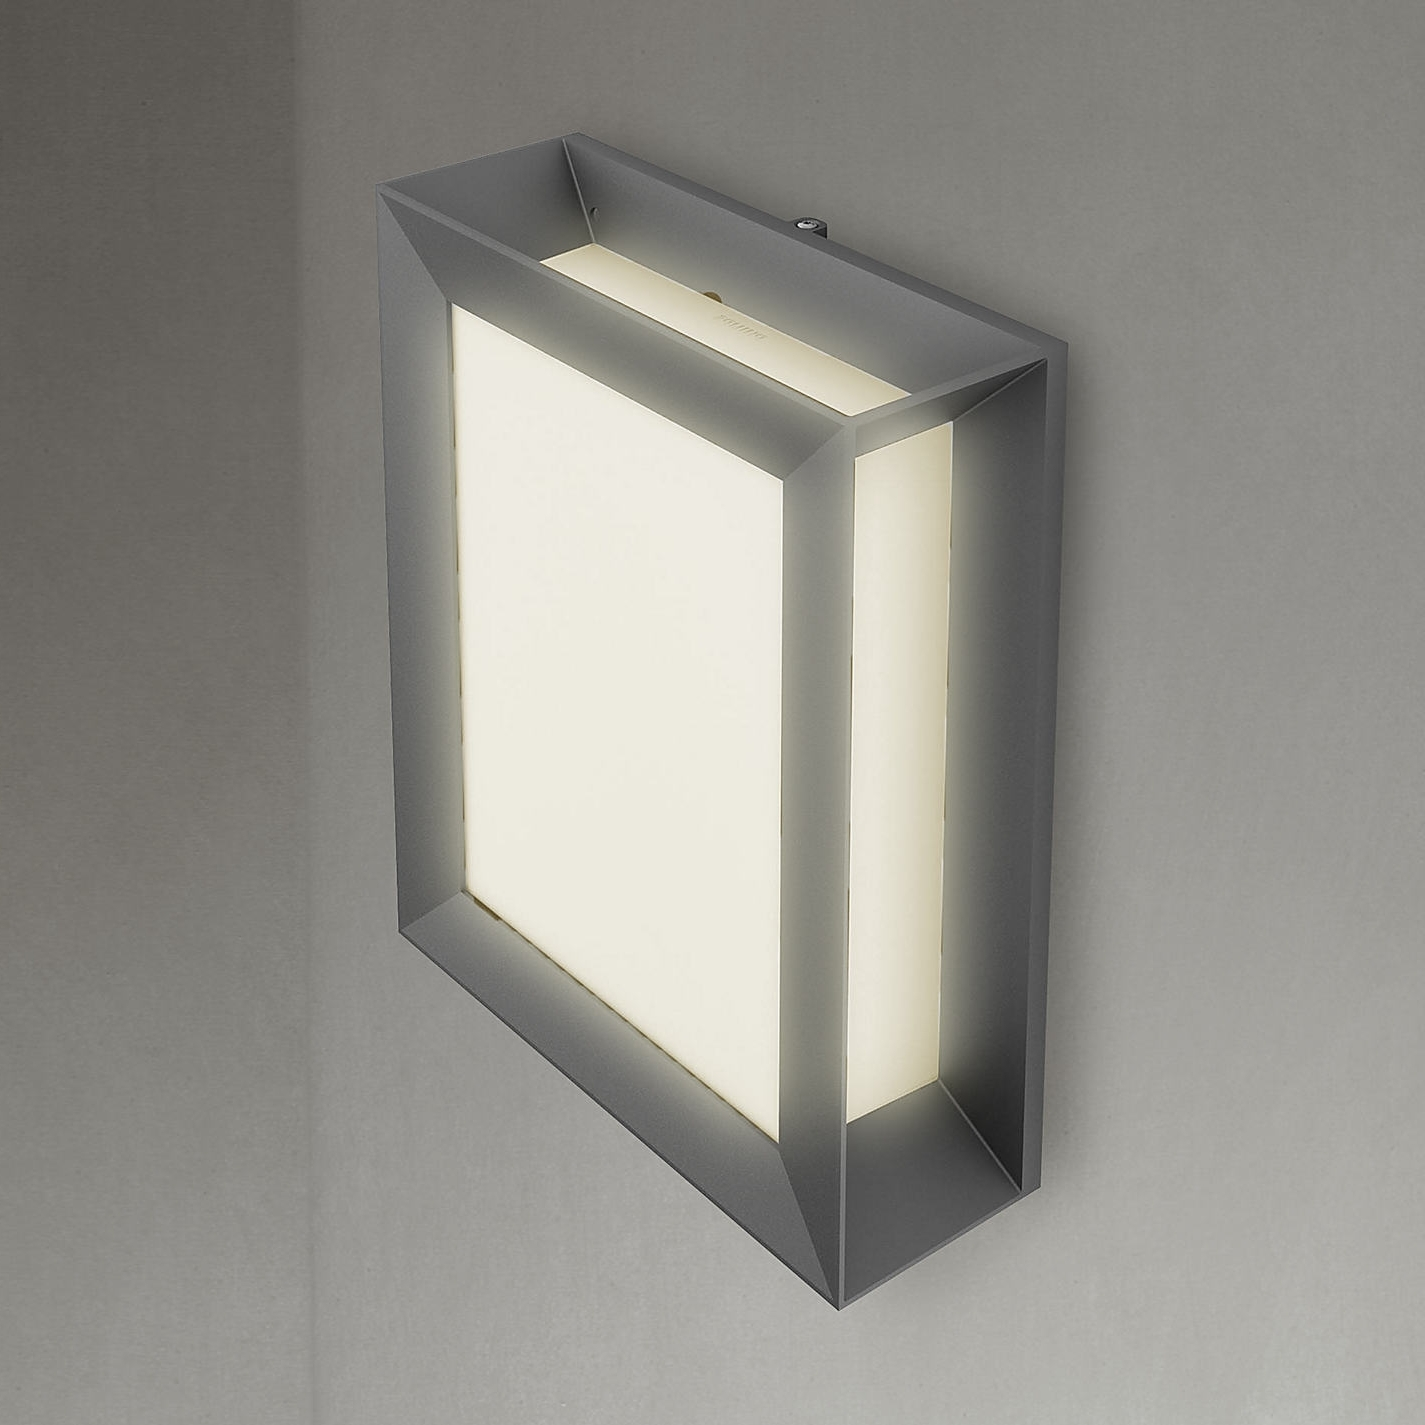 John Lewis Outdoor Ceiling Lights Pertaining To Well Known Buy Philips Karp Led Outdoor Wall Light Anthracite John Lewis (Gallery 1 of 20)